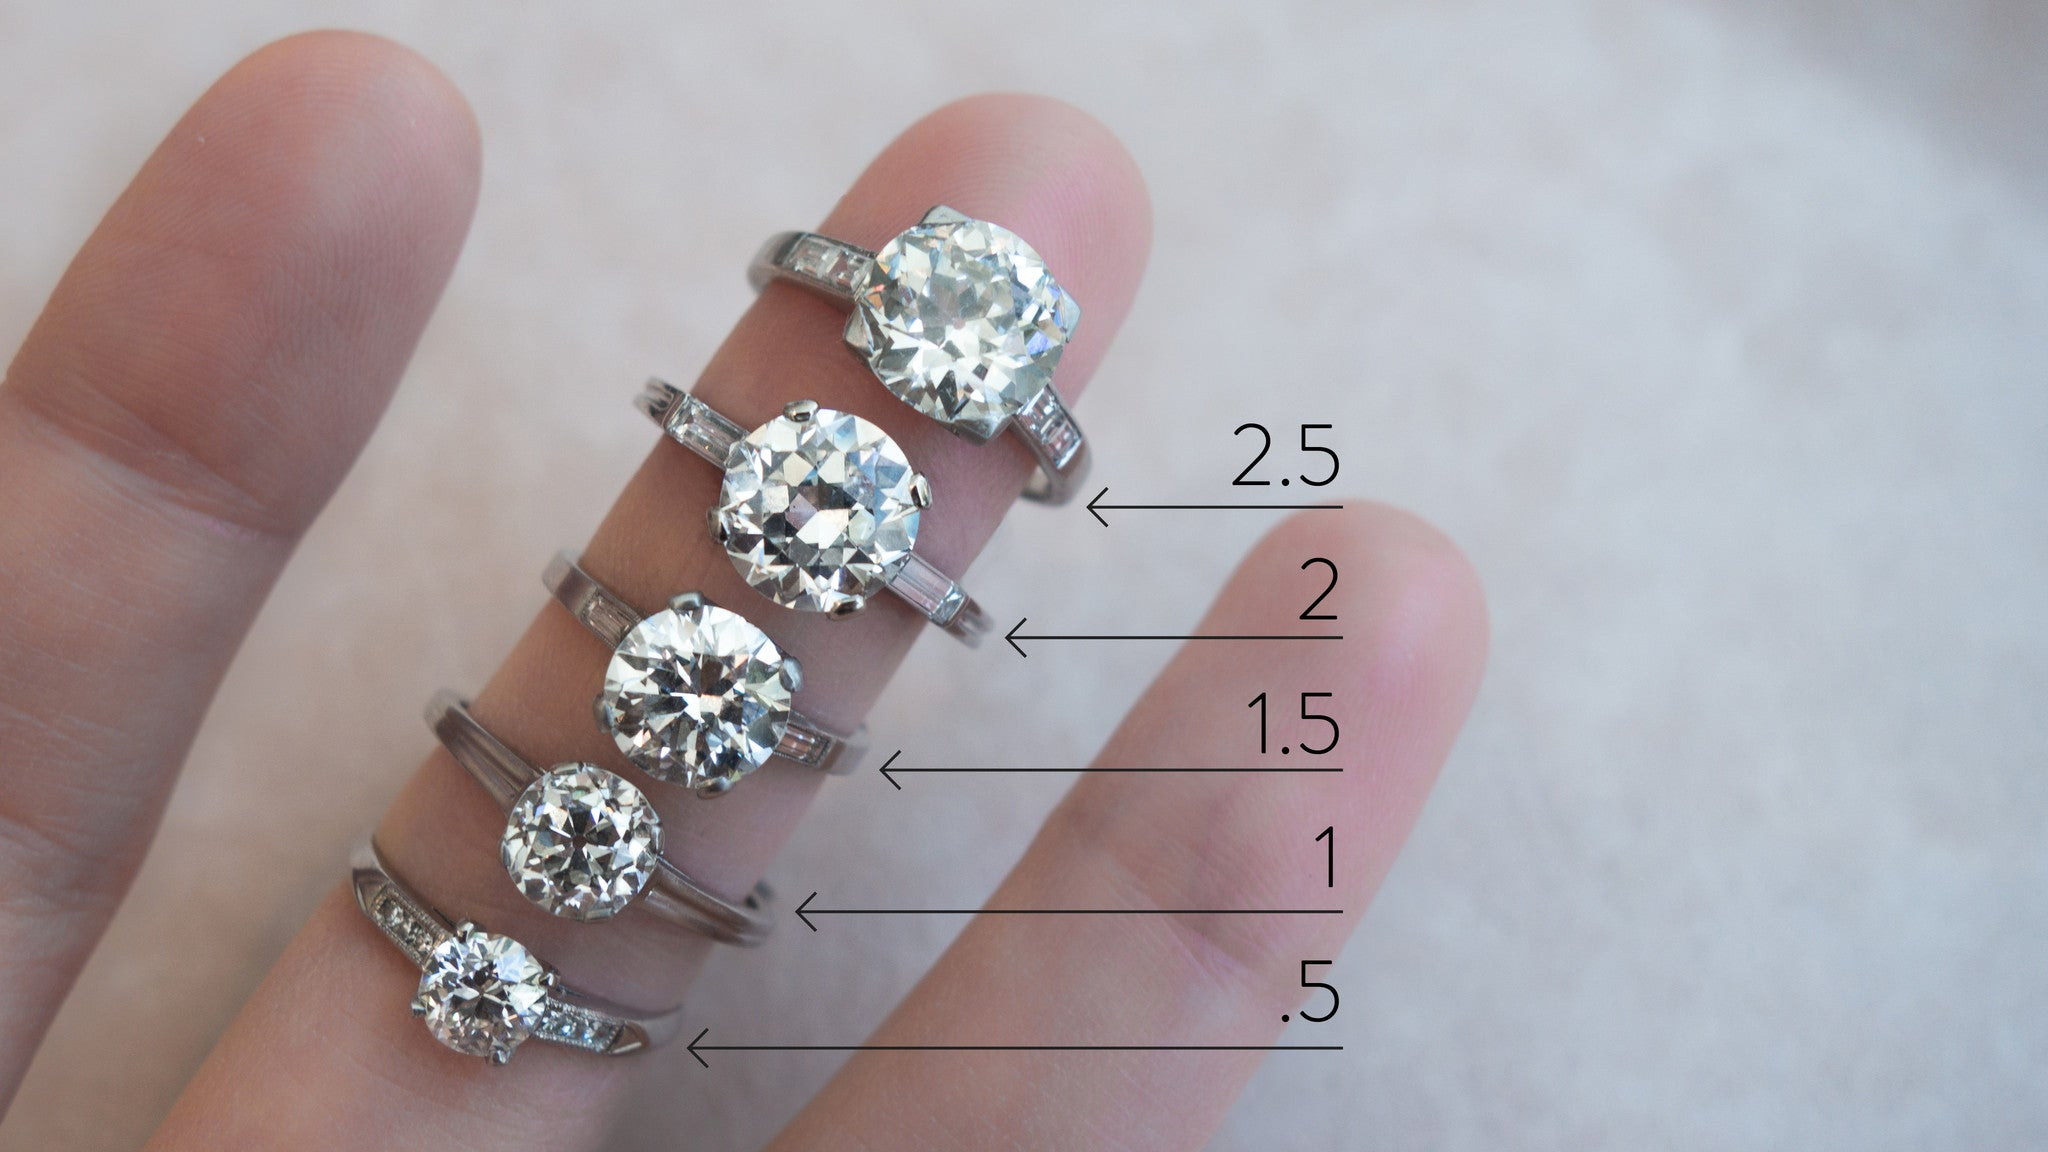 Gemstone Size Chart Actual Size